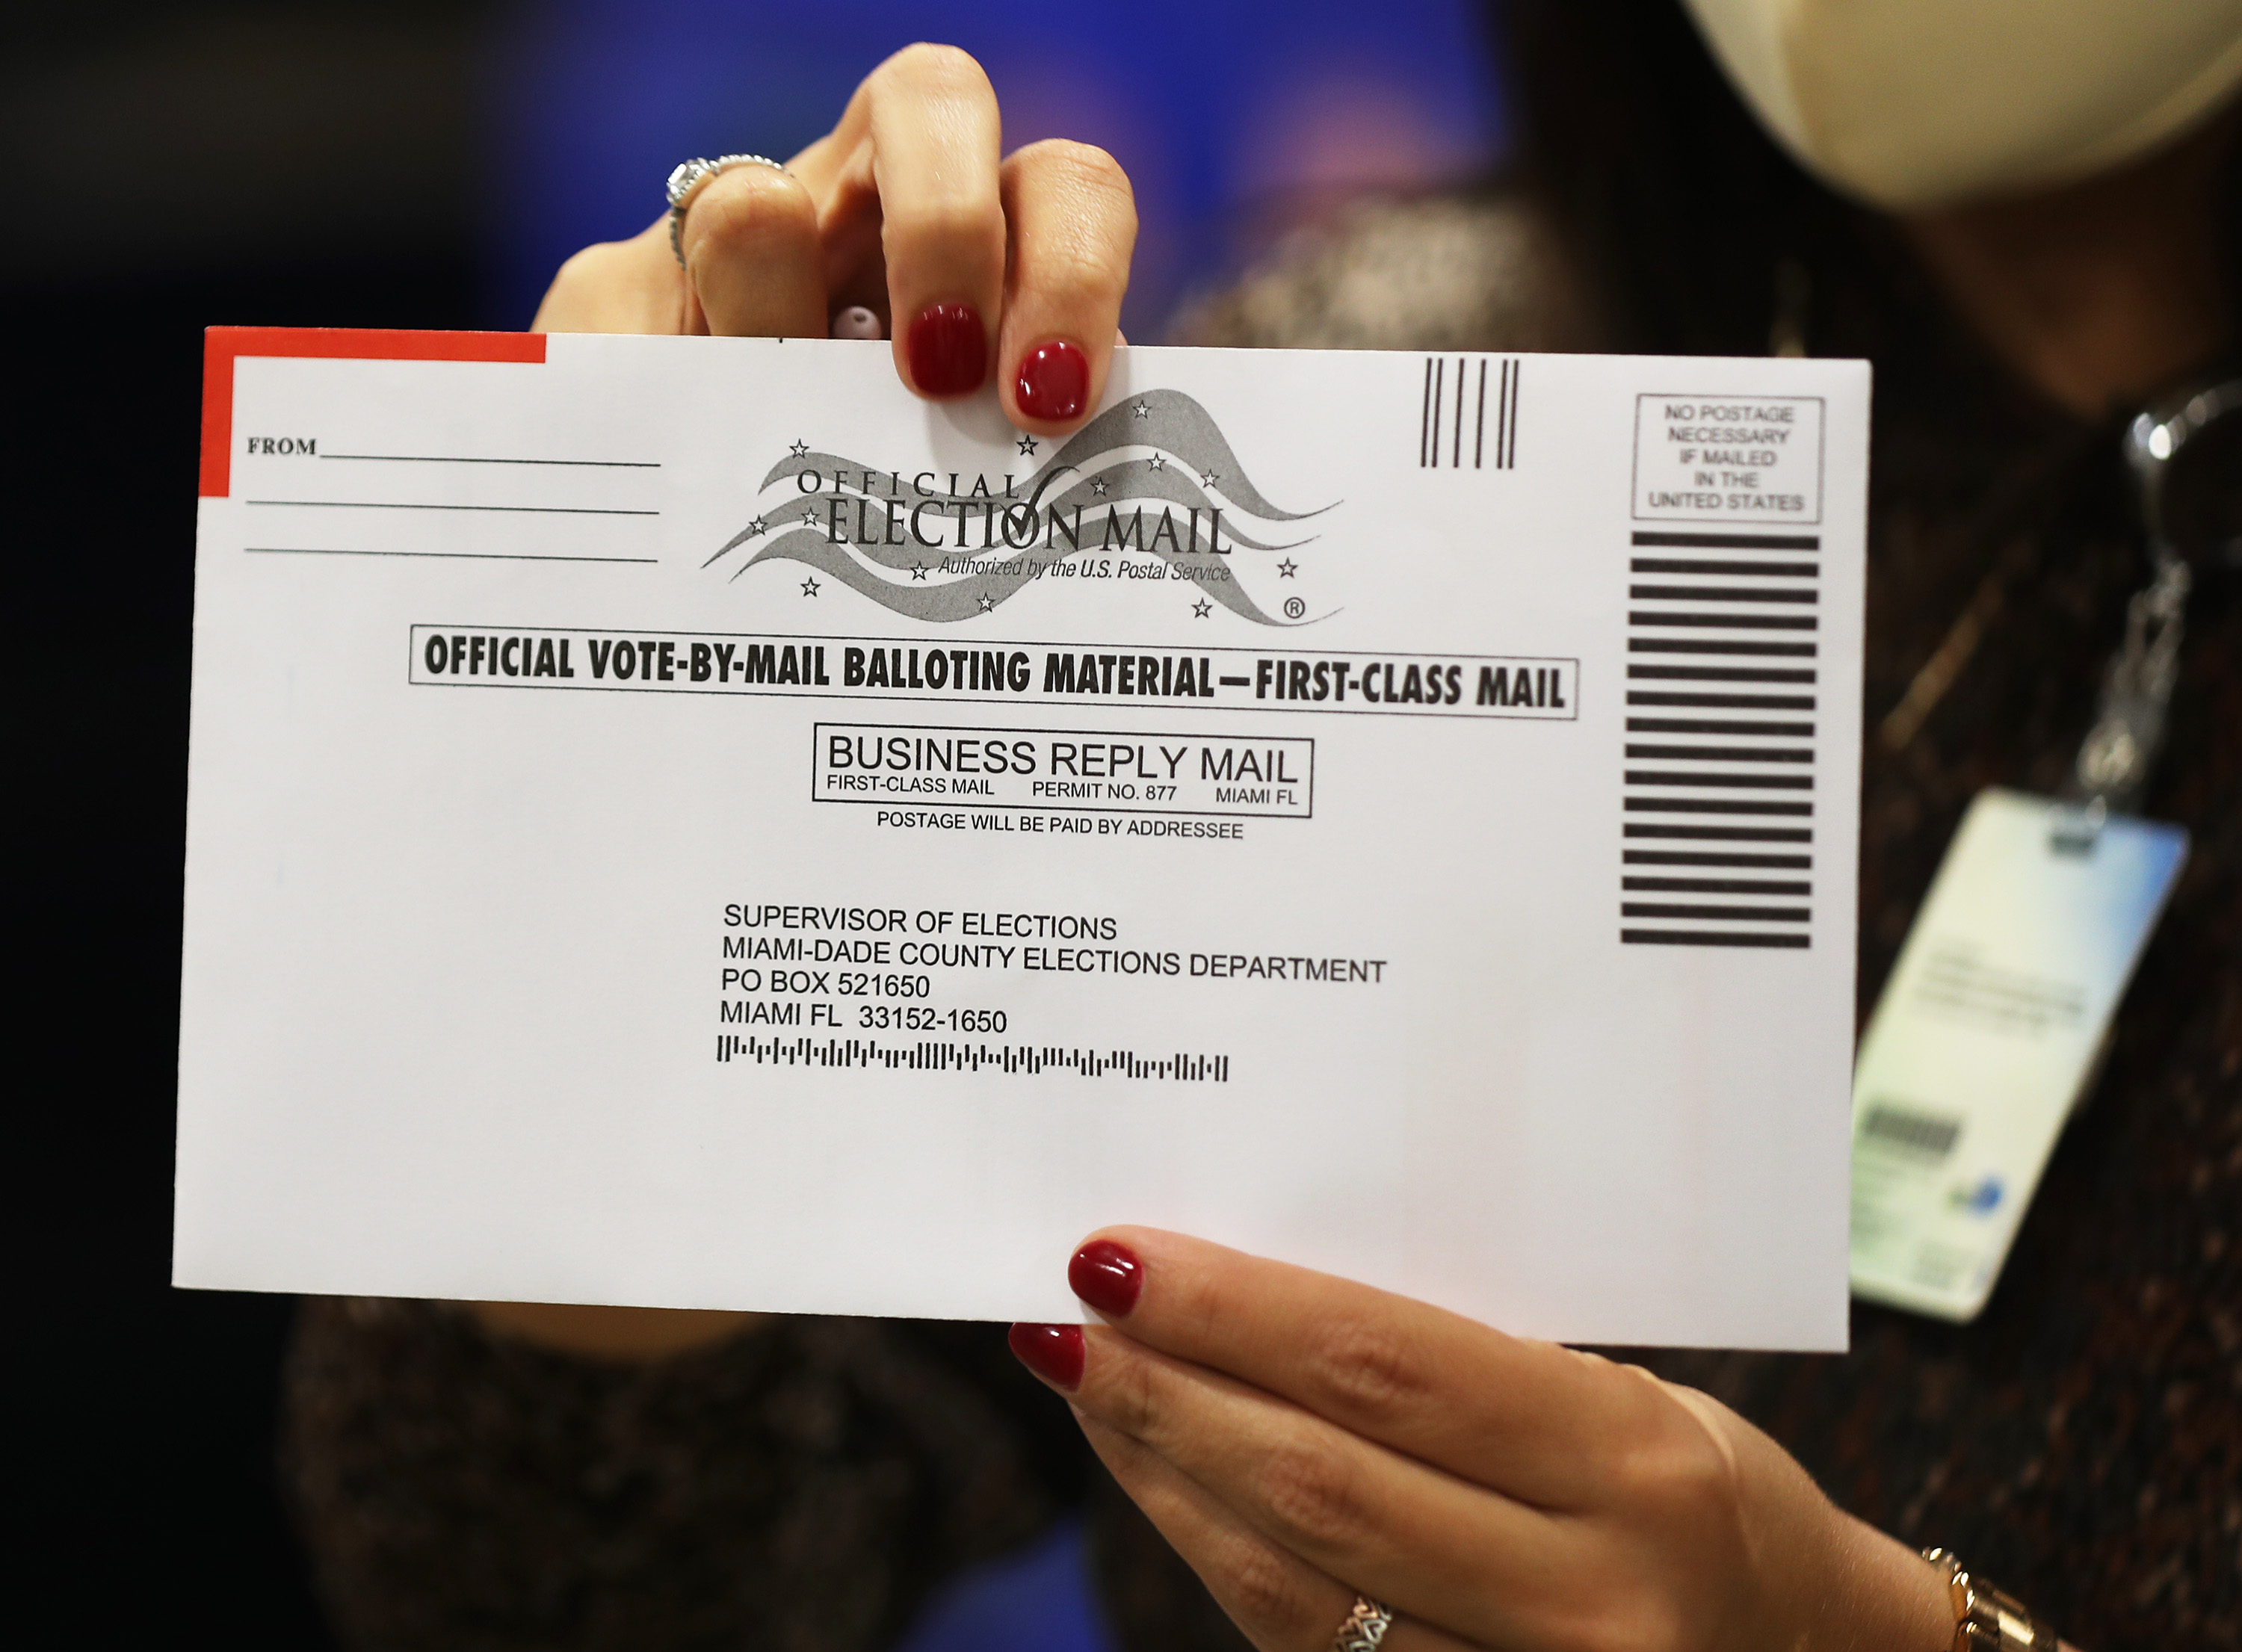 A man caught committing ballot fraud in Florida proves mail voting is secure thumbnail